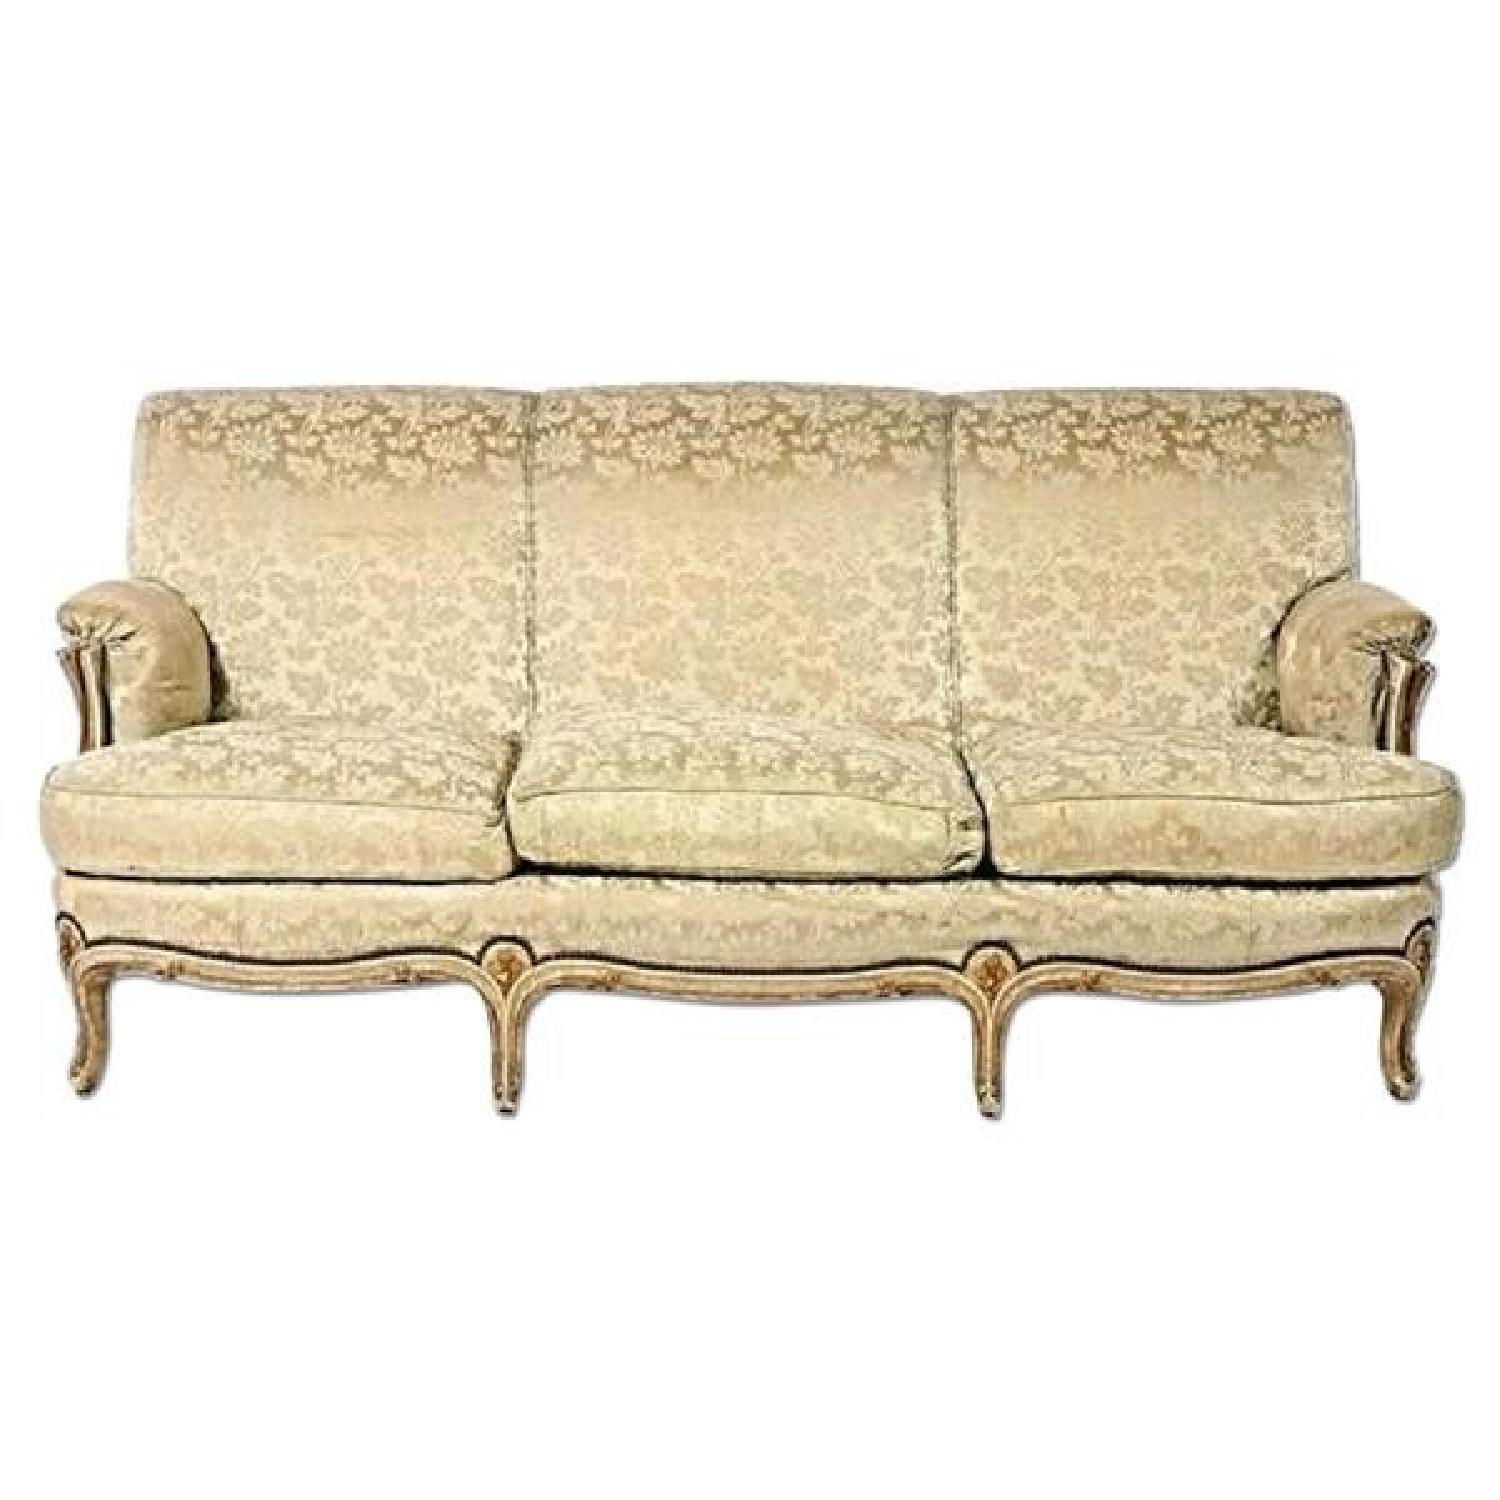 Antique 1930 Louis XV Style Painted Gilt Loveseat